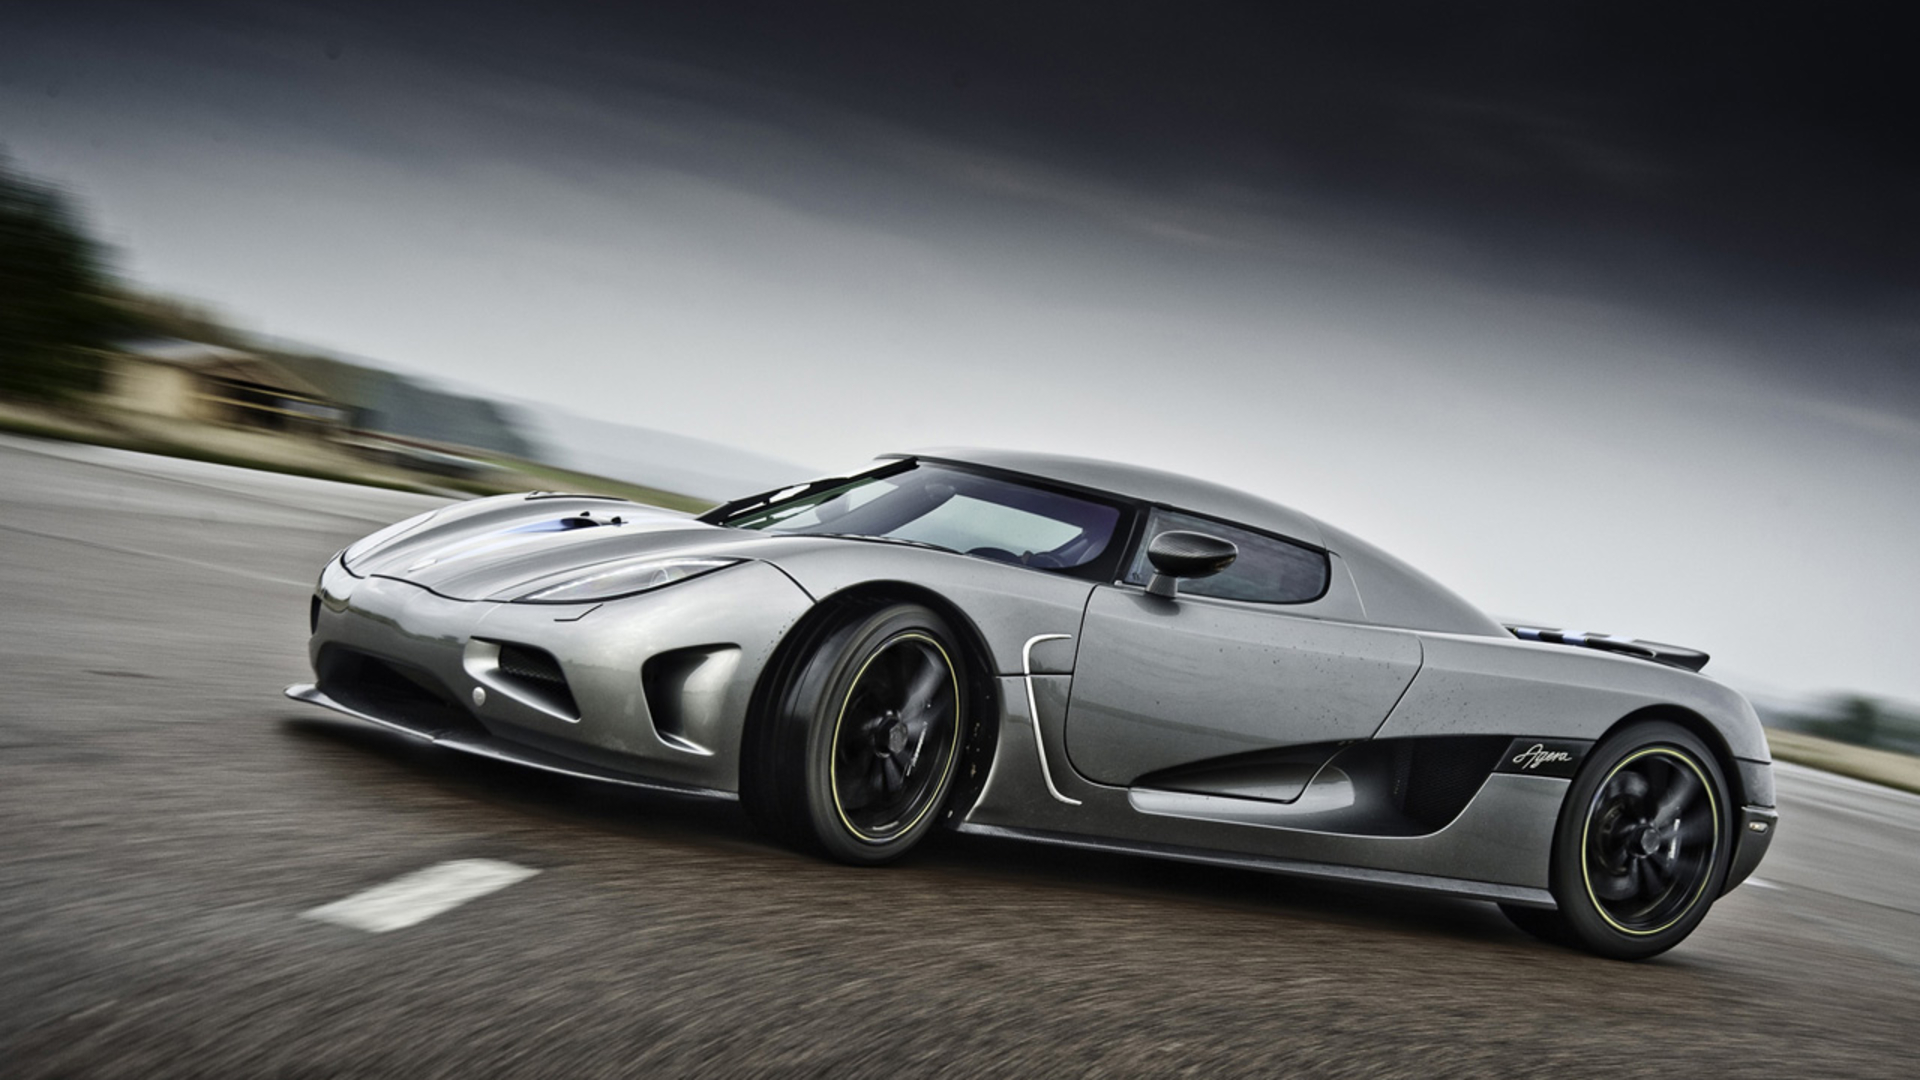 Koenigsegg Super Car HD Wallpaper 10   SA Wallpapers 1920x1080